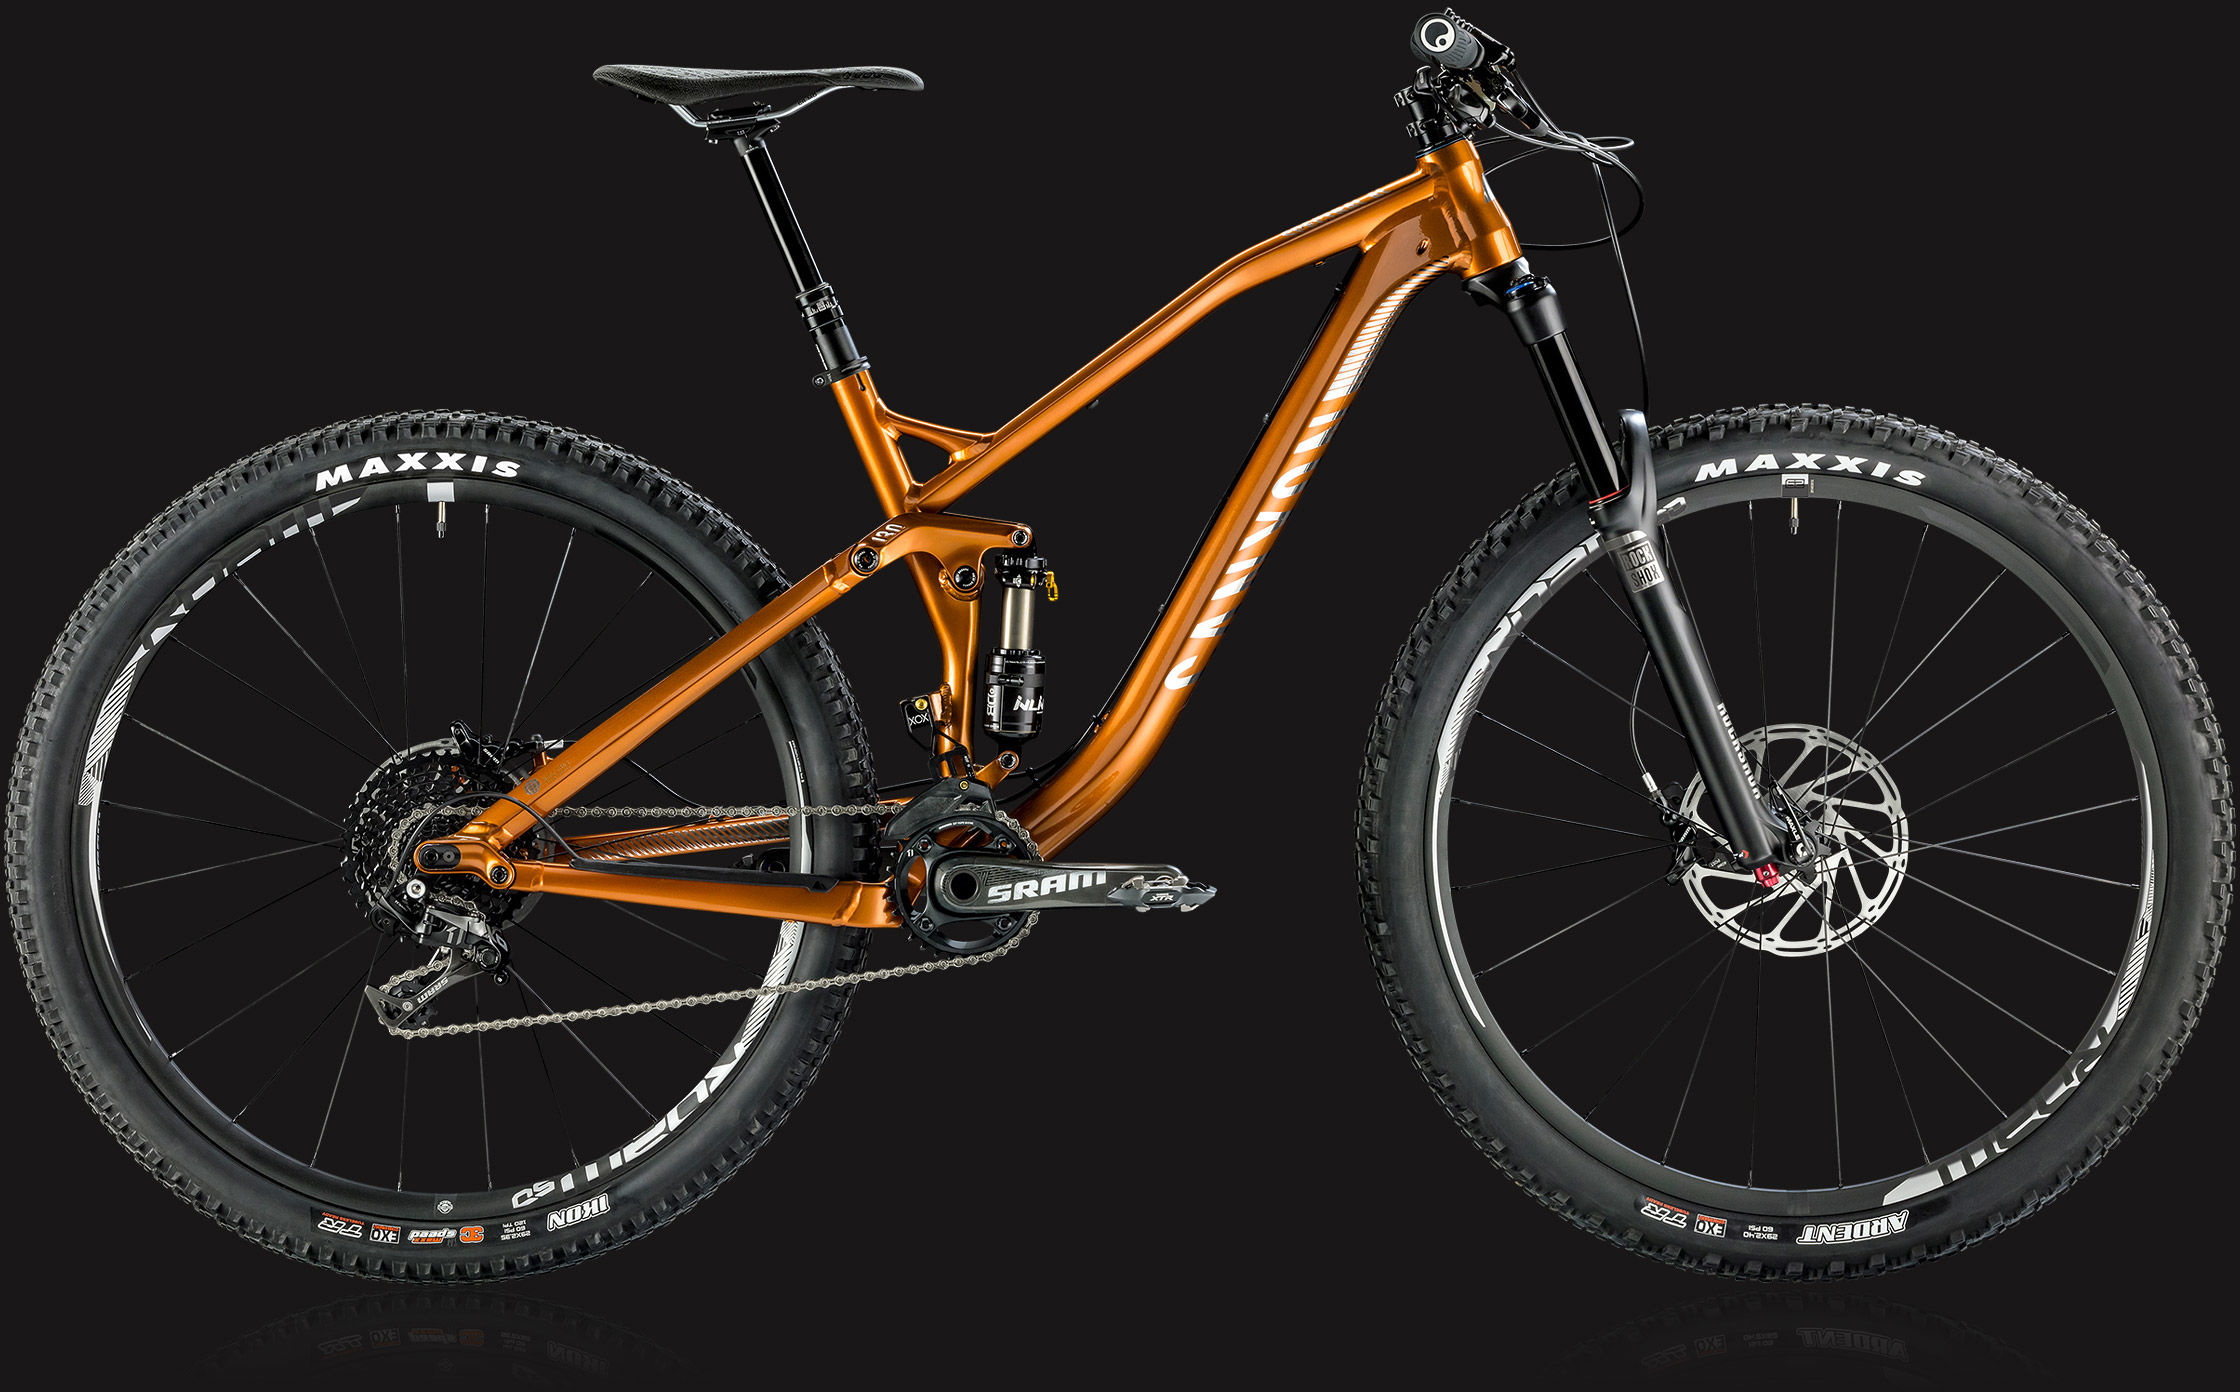 Canyon Spectral Al 9 9 Ex 2015 Review The Bike List